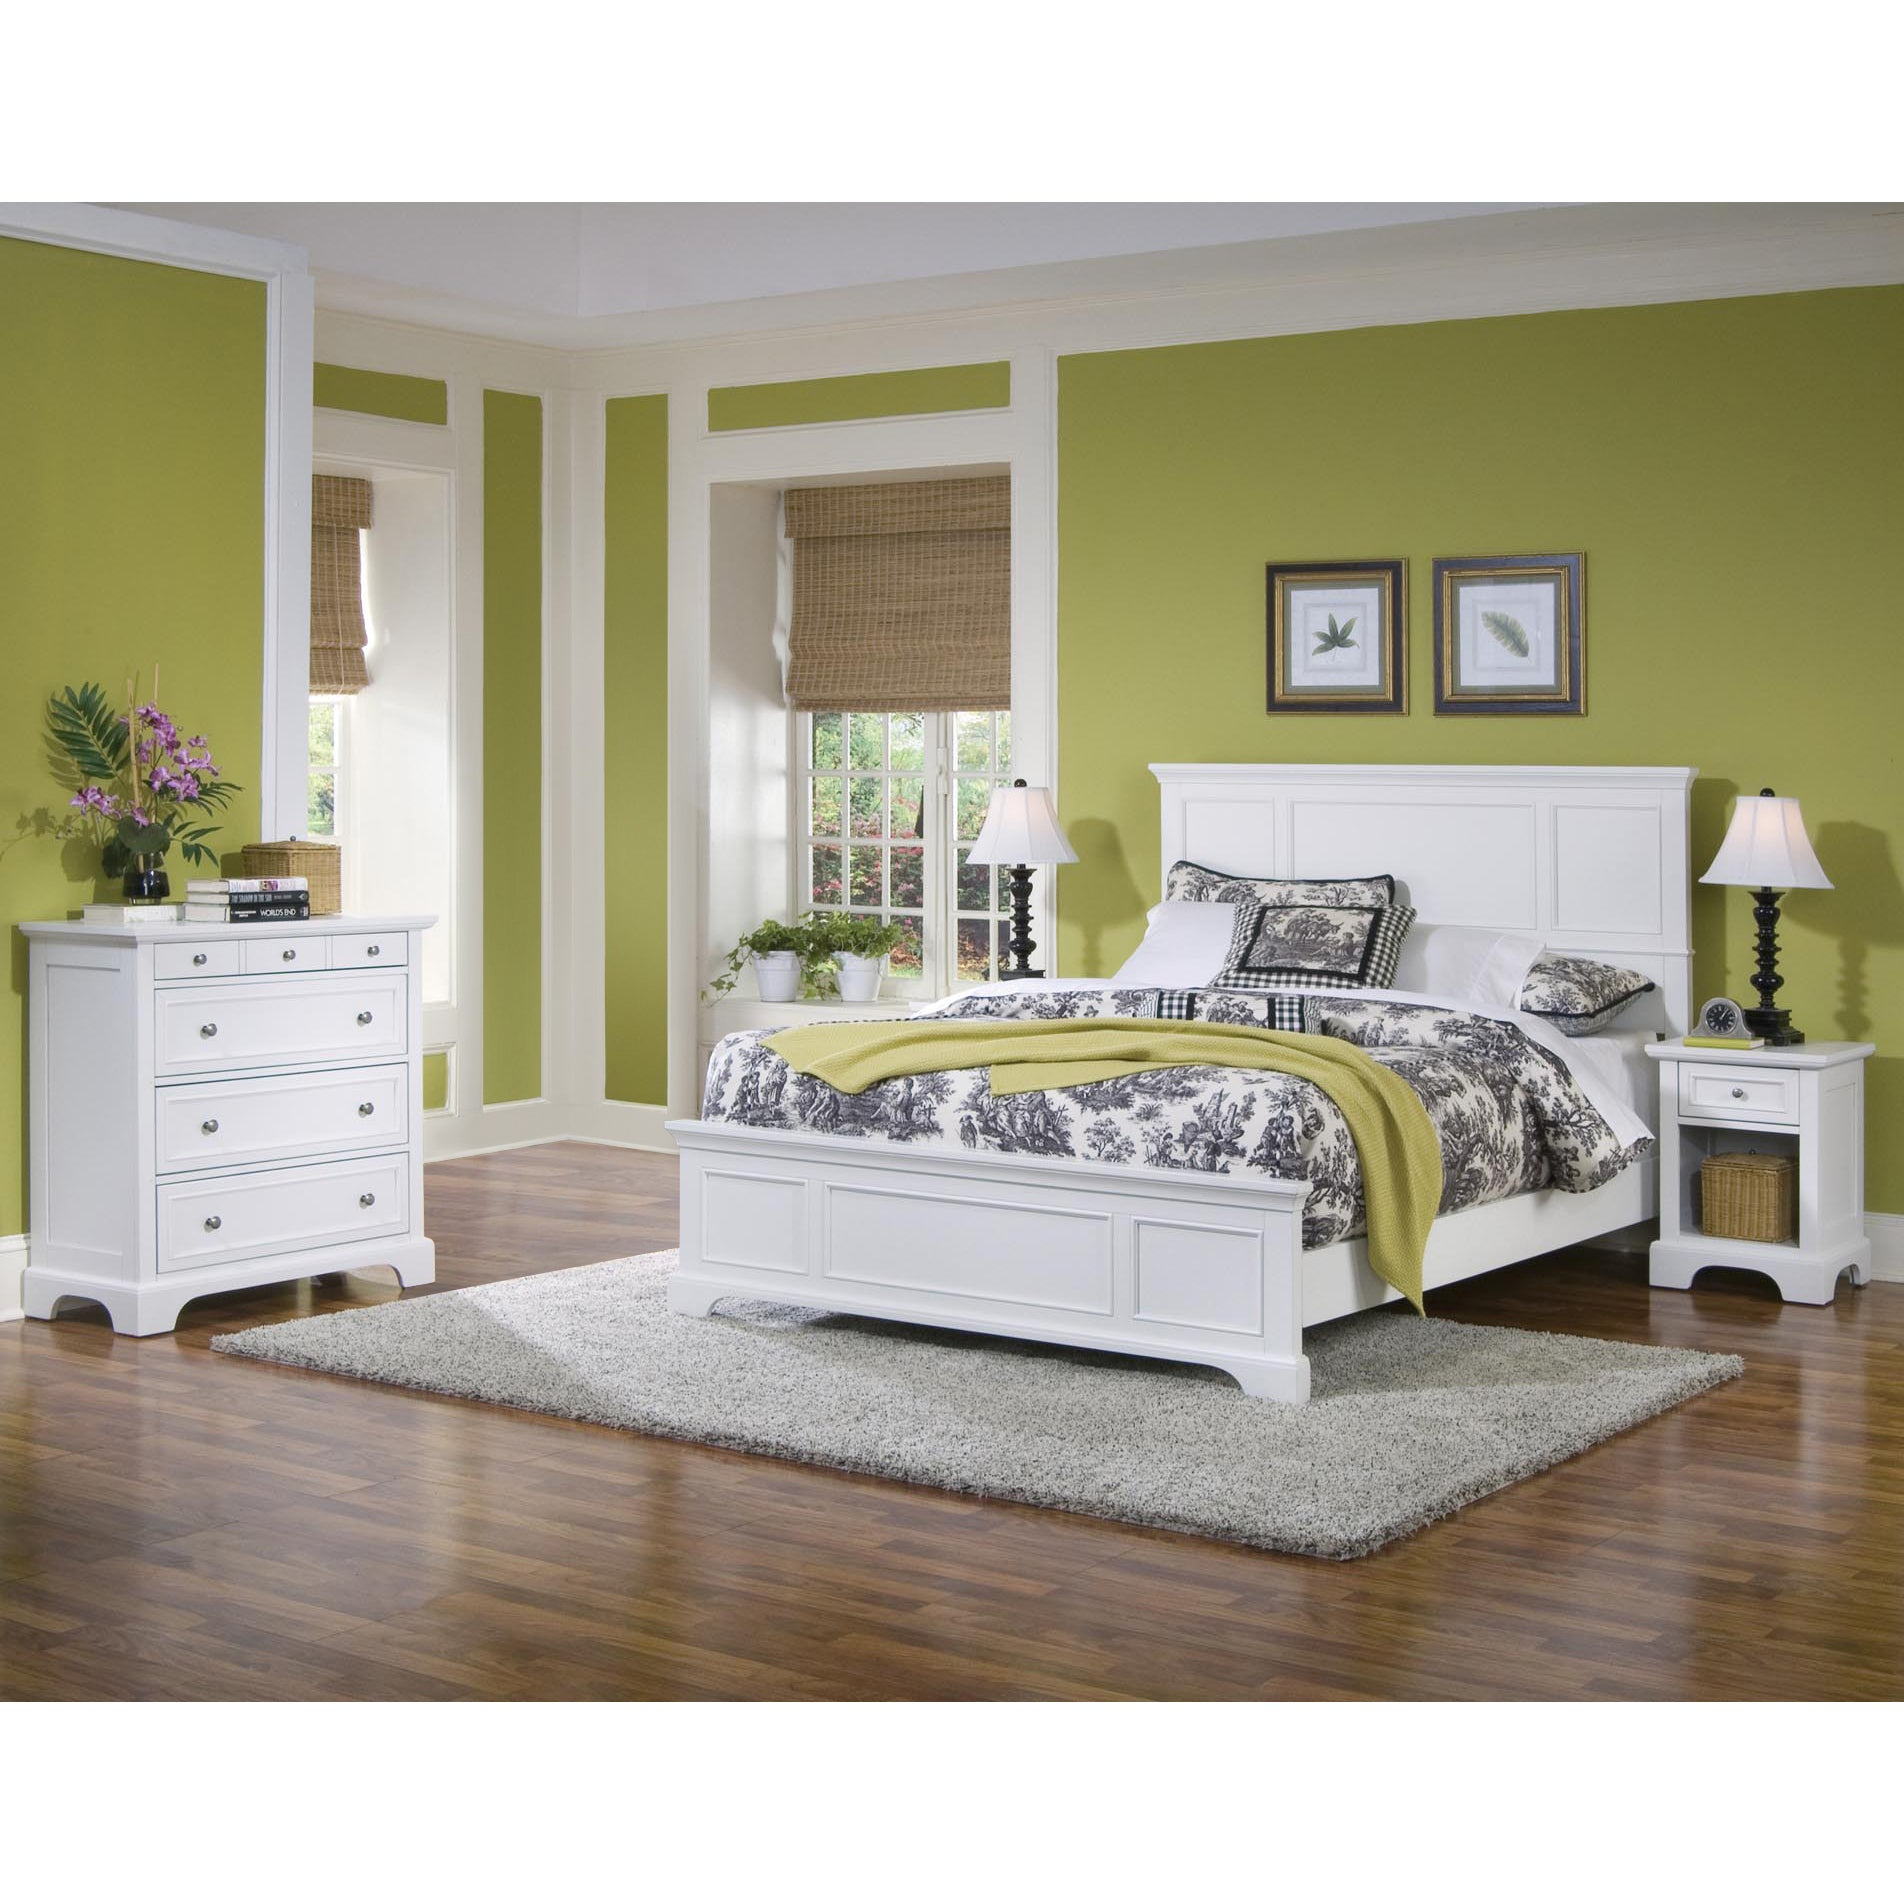 Naples Queen Bed Nightstand And Chest Bedroom Set By Home Styles Free Shipping Today 14188268